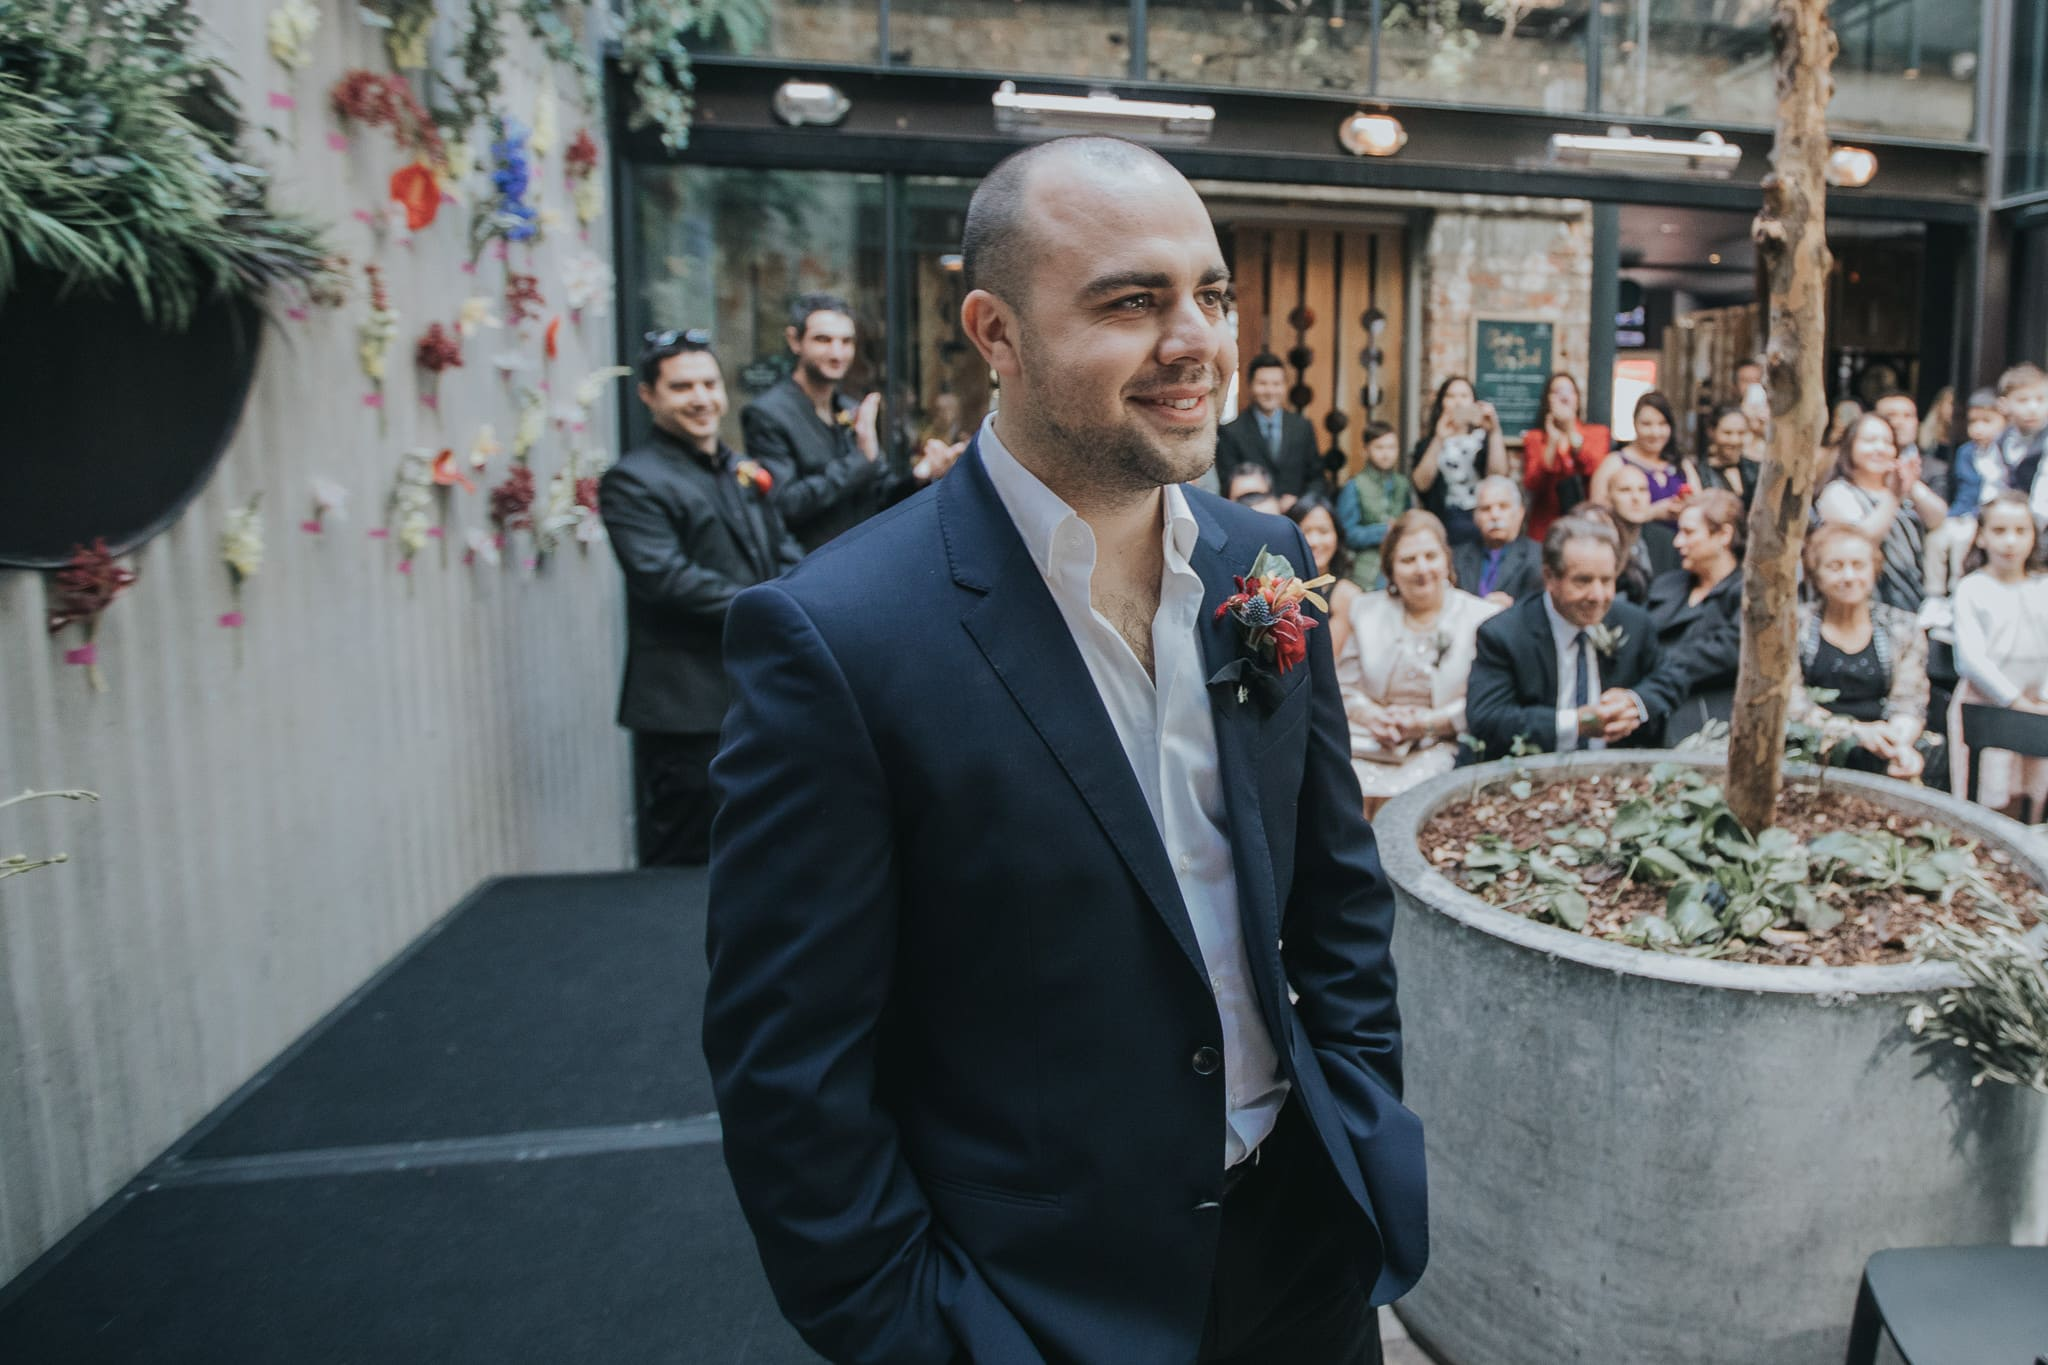 Groom excited and waiting for the bride at the ceremony in Melbourne - Captured by Melbourne Wedding Photographer